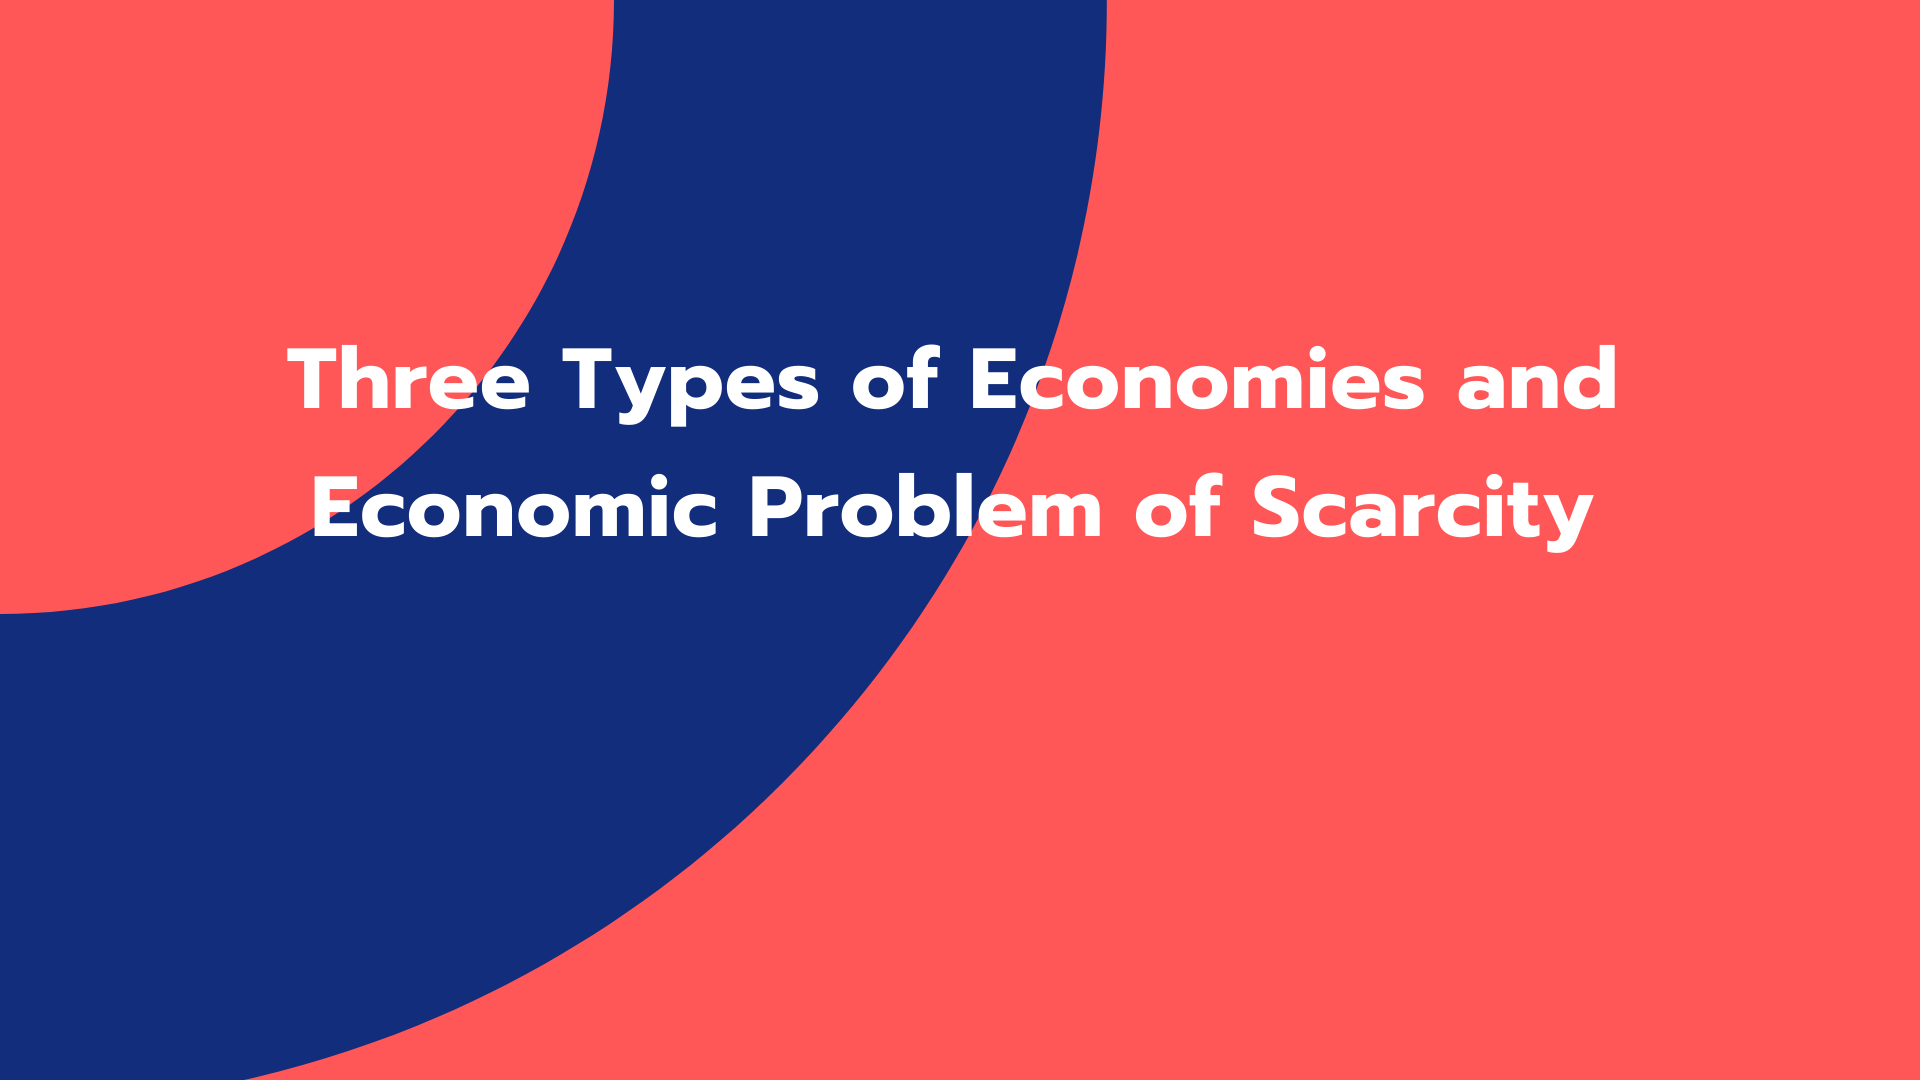 Three Types of Economies and Economic Problem of Scarcity